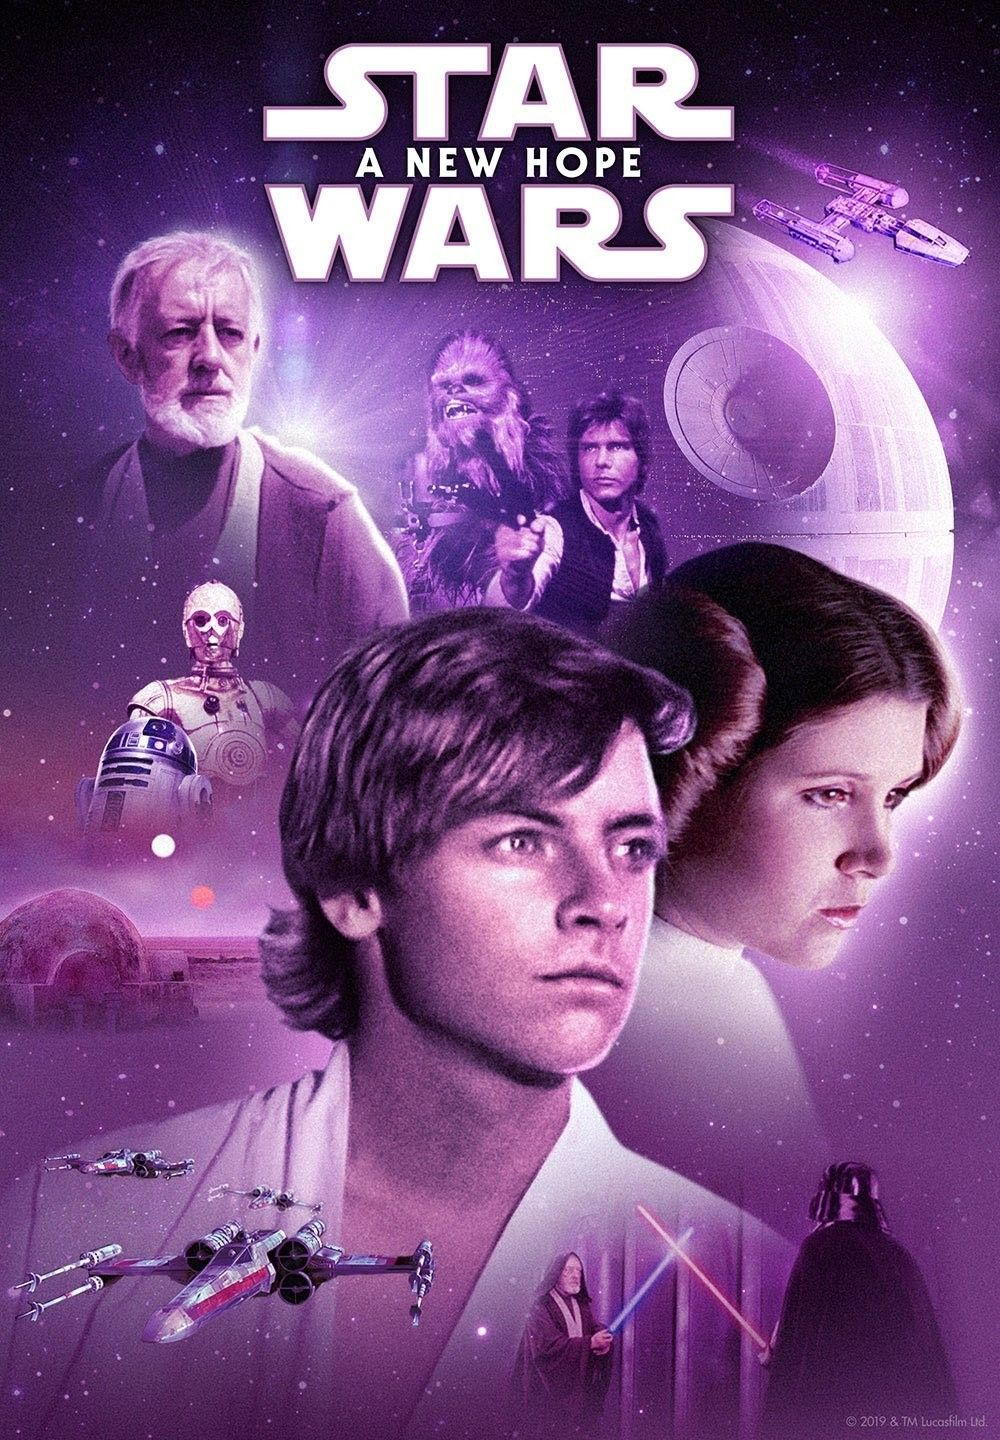 Star Wars: A New Hope | 4K UHD Movies Anywhere Code Ports to Vudu, iTunes, GP - Movie Sometimes